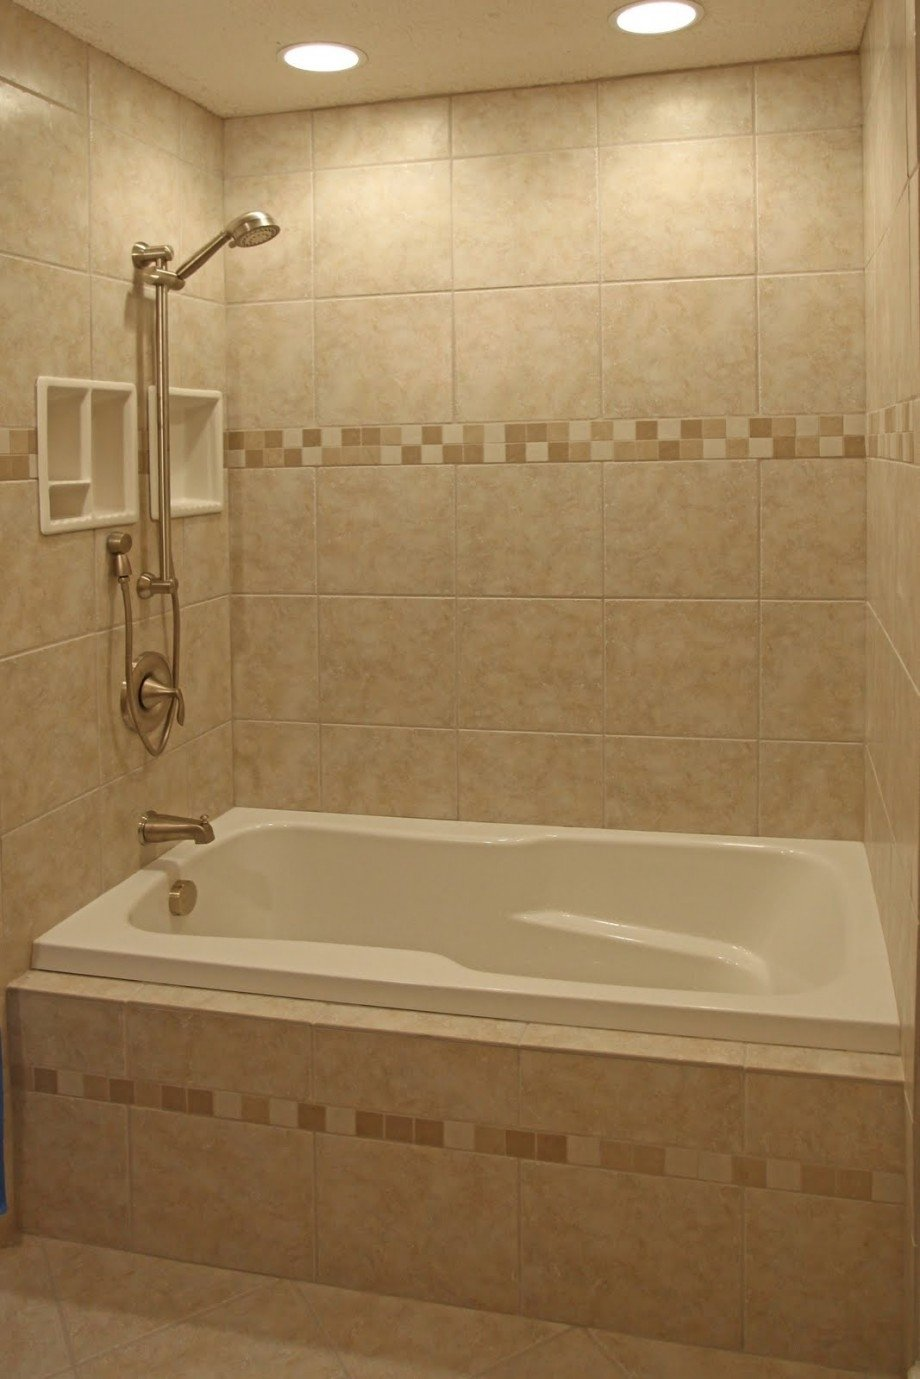 10 Amazing Bathroom Tile Ideas On A Budget simple bathroom tile ideas on a budget on small resident remodel 2020